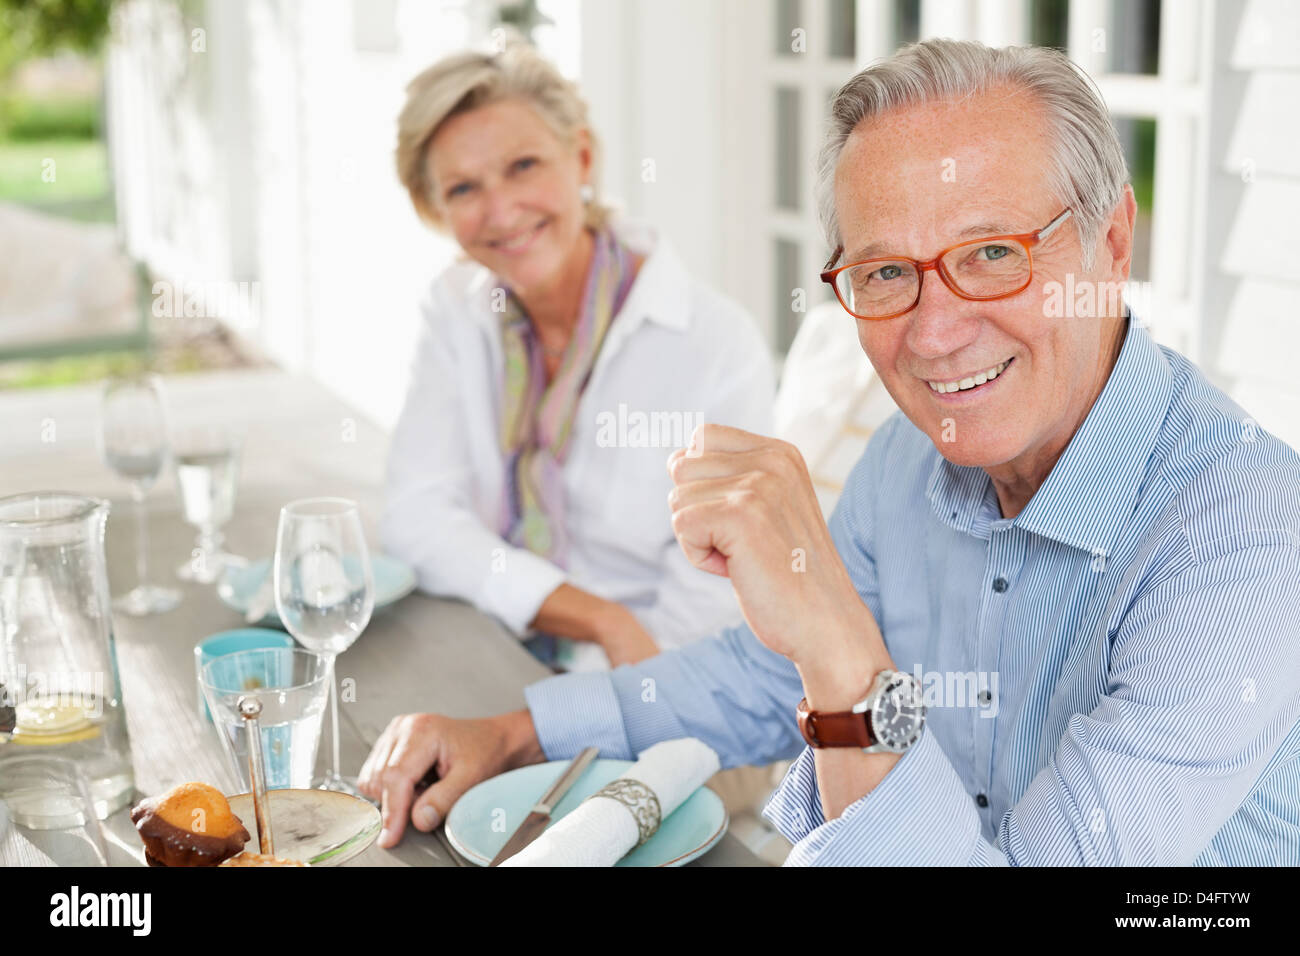 Couple smiling at table Photo Stock